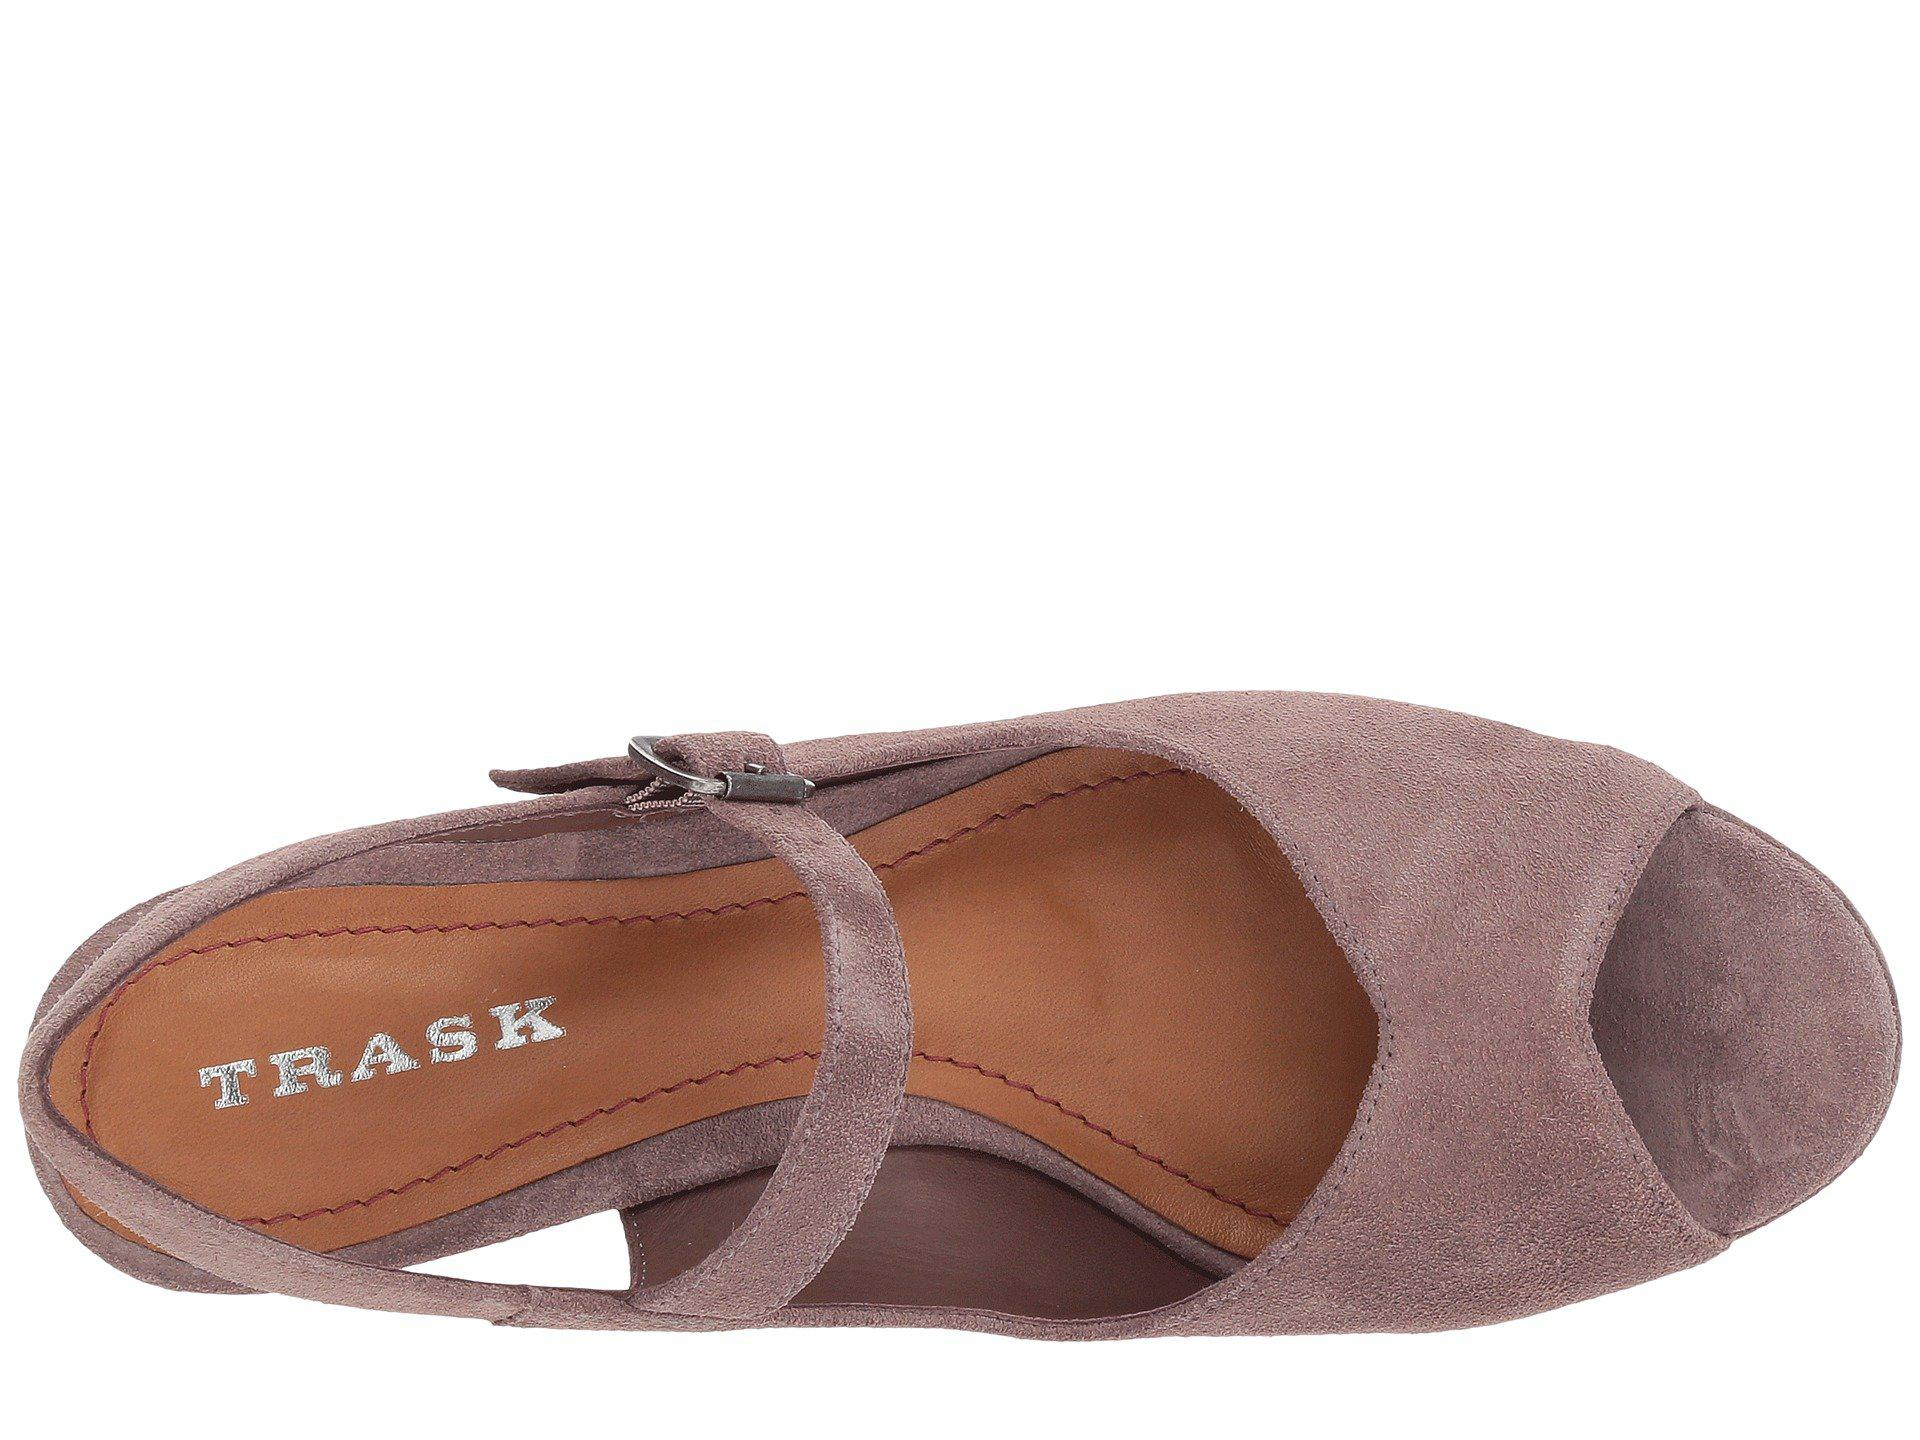 b8a43bfd84a4 Lyst - Trask Tessa in Brown